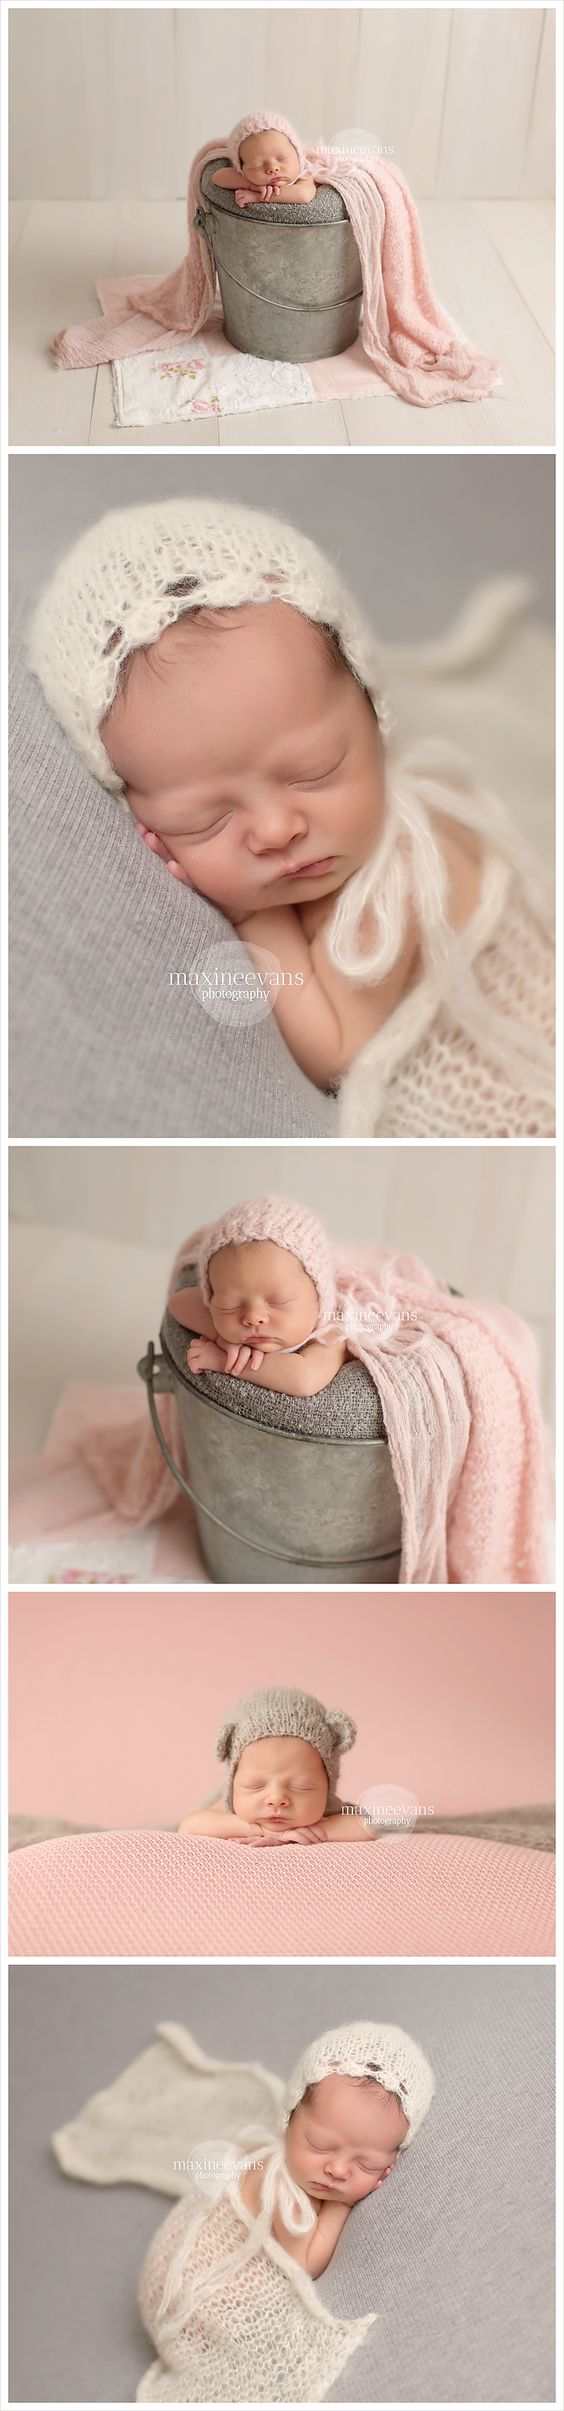 Newborn Photography Los Angeles www.maxineevansphotography.com